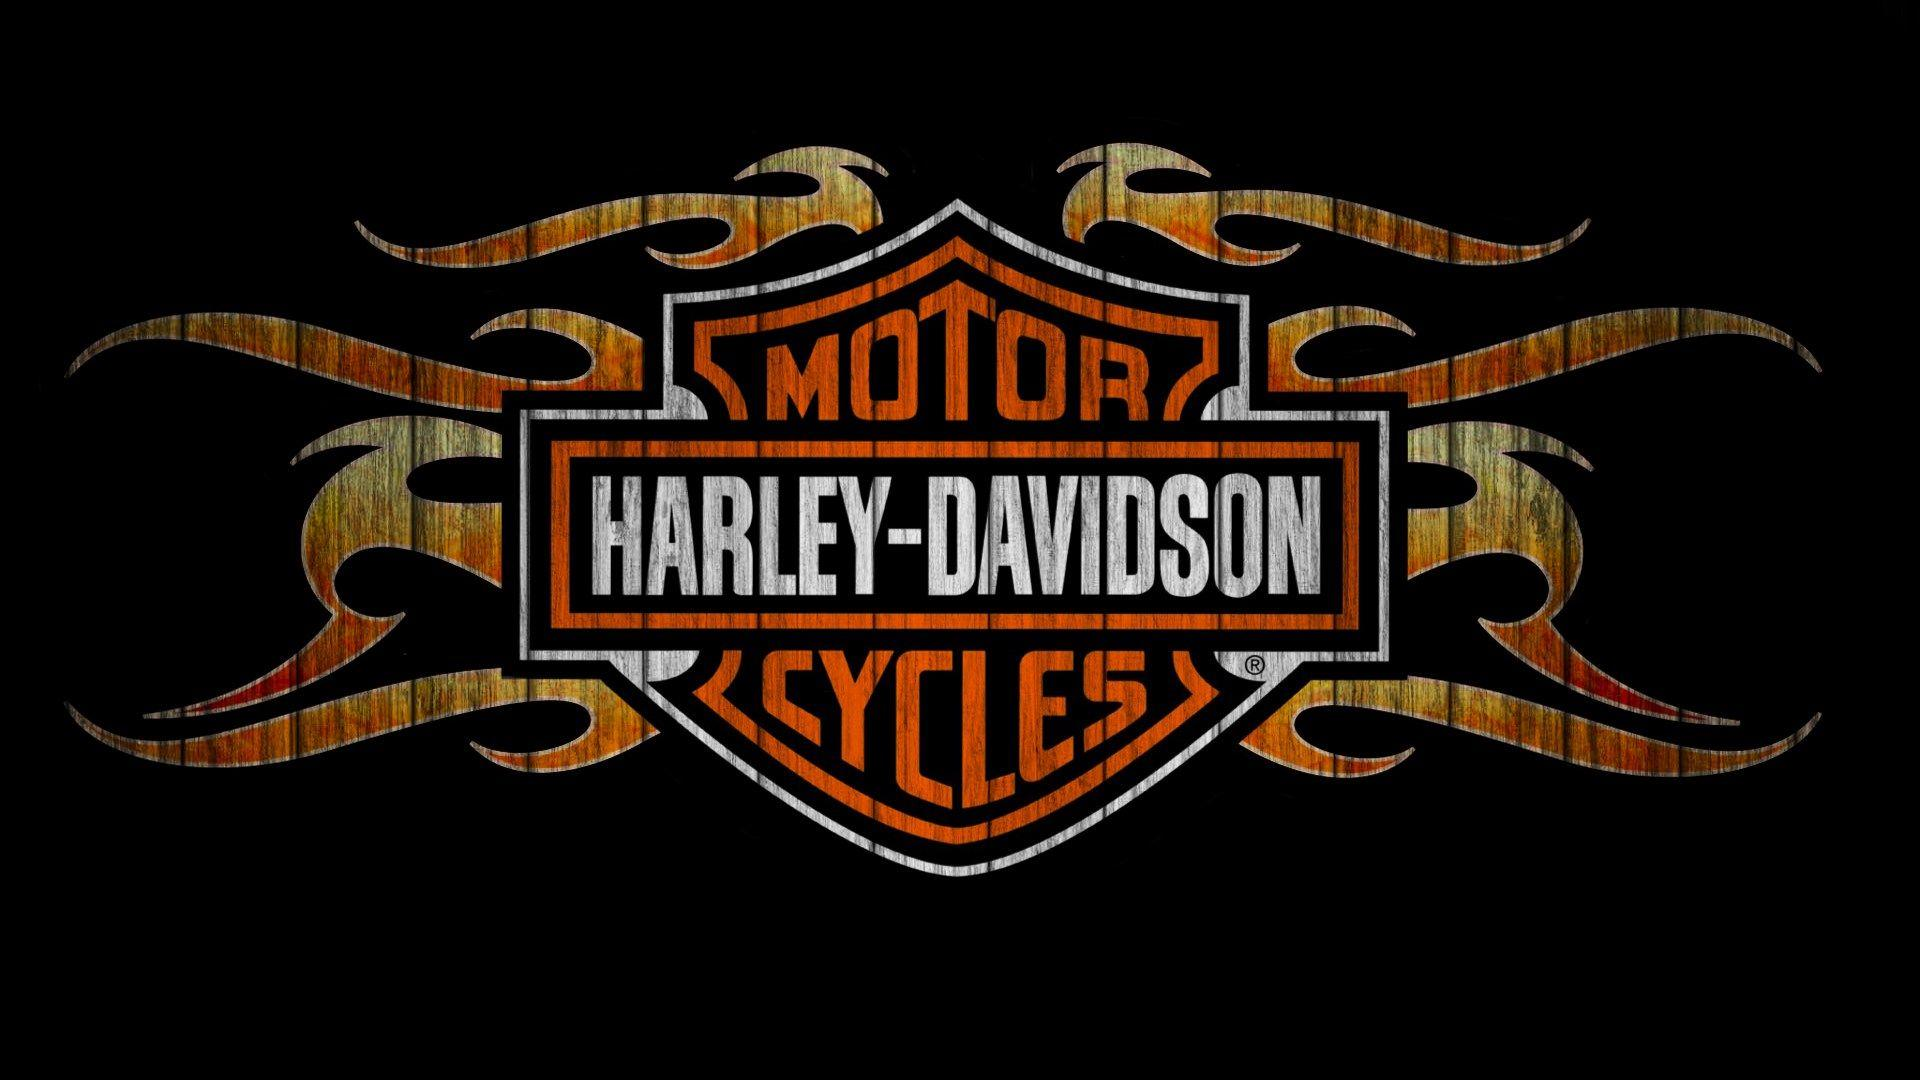 harley davidson wallpaper pack 1080p hd | 2048x1536 | 634 kB by ...